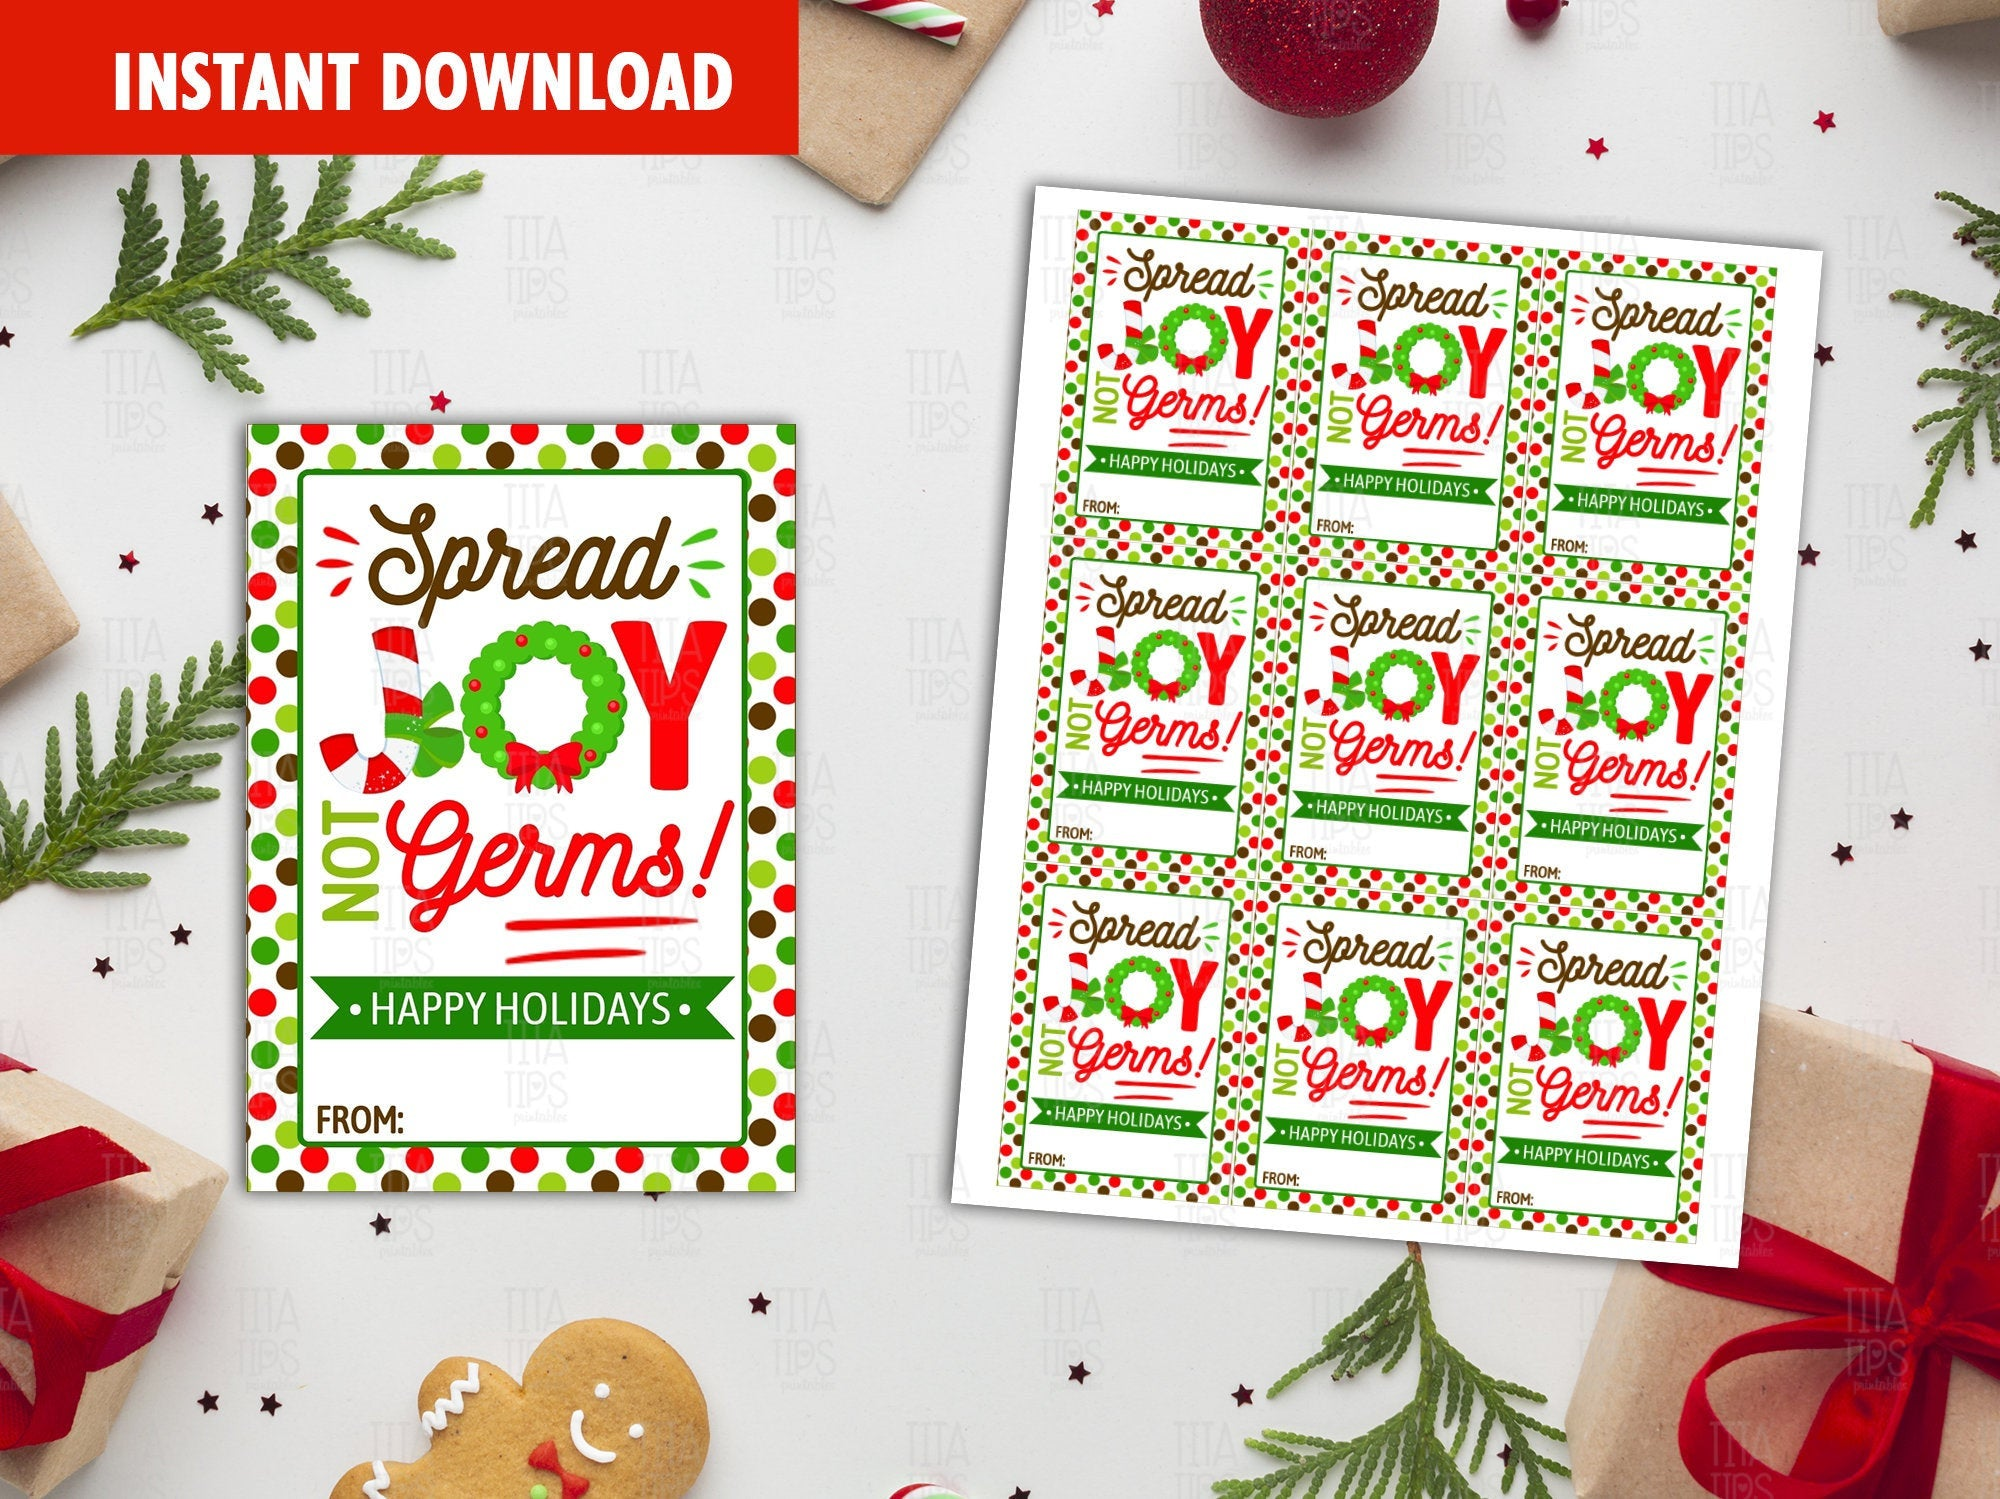 Spread Joy not Germs Printable Card, Merry Christmas Favor Tags, Classmate Holidays Exchange, Instant Download - TitaTipsPrintables